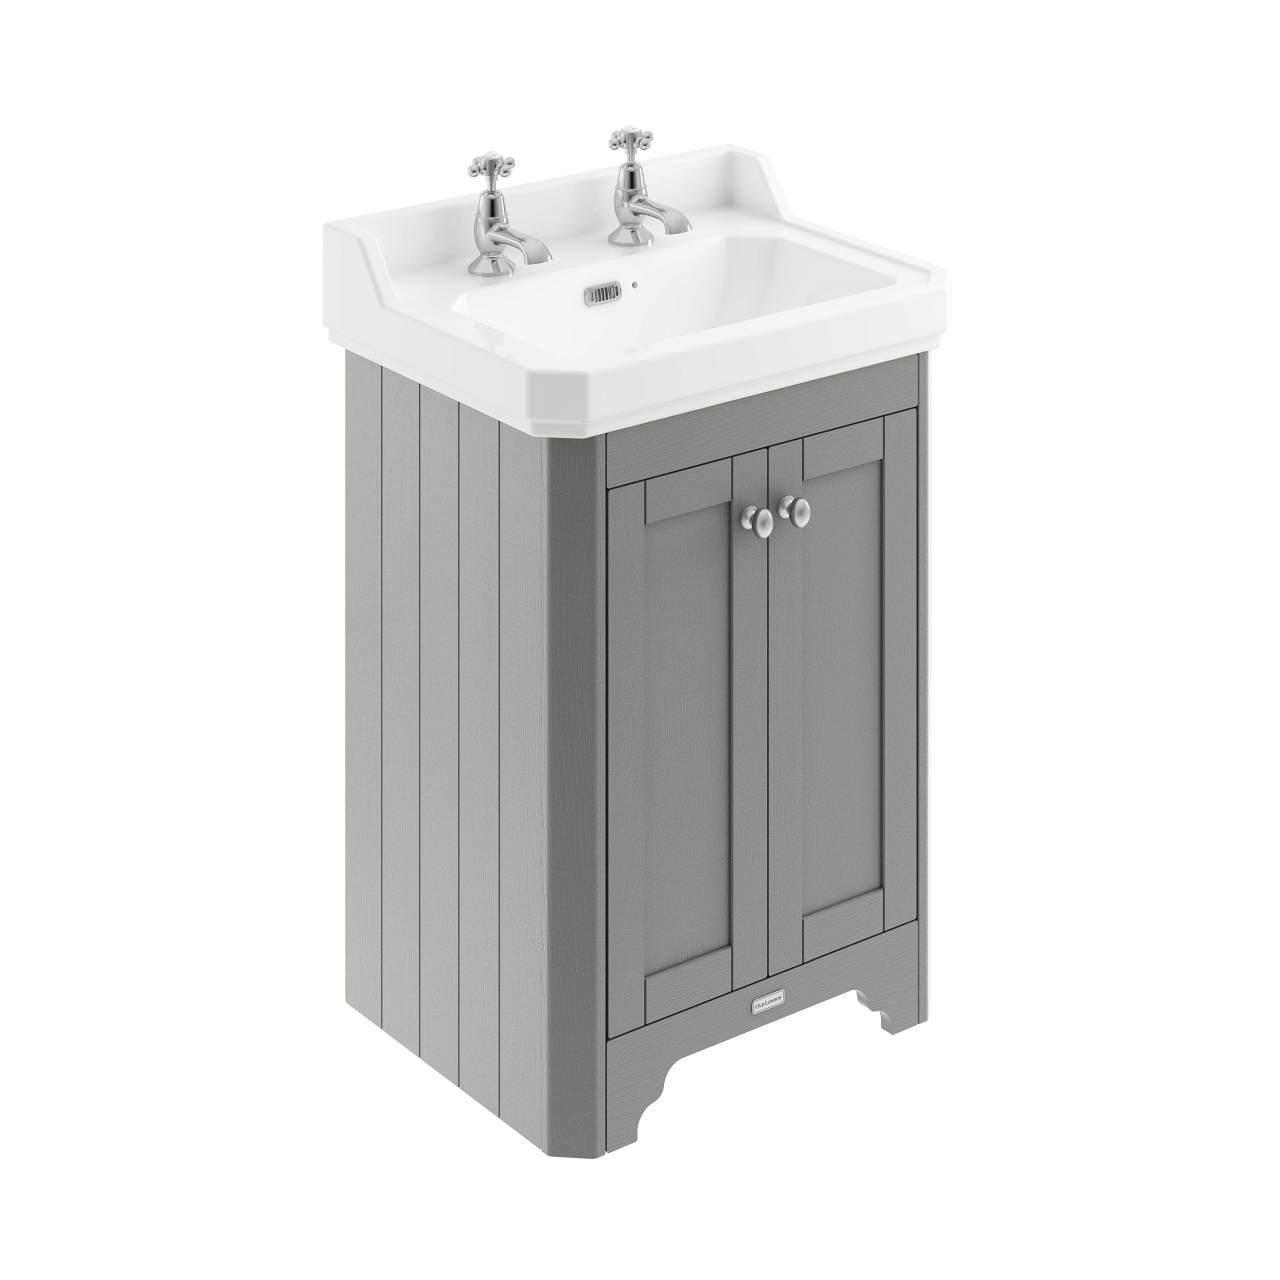 Old London Storm Grey 595mm 2 Door Vanity Unit and Basin with 2 Tap Holes - LOF271